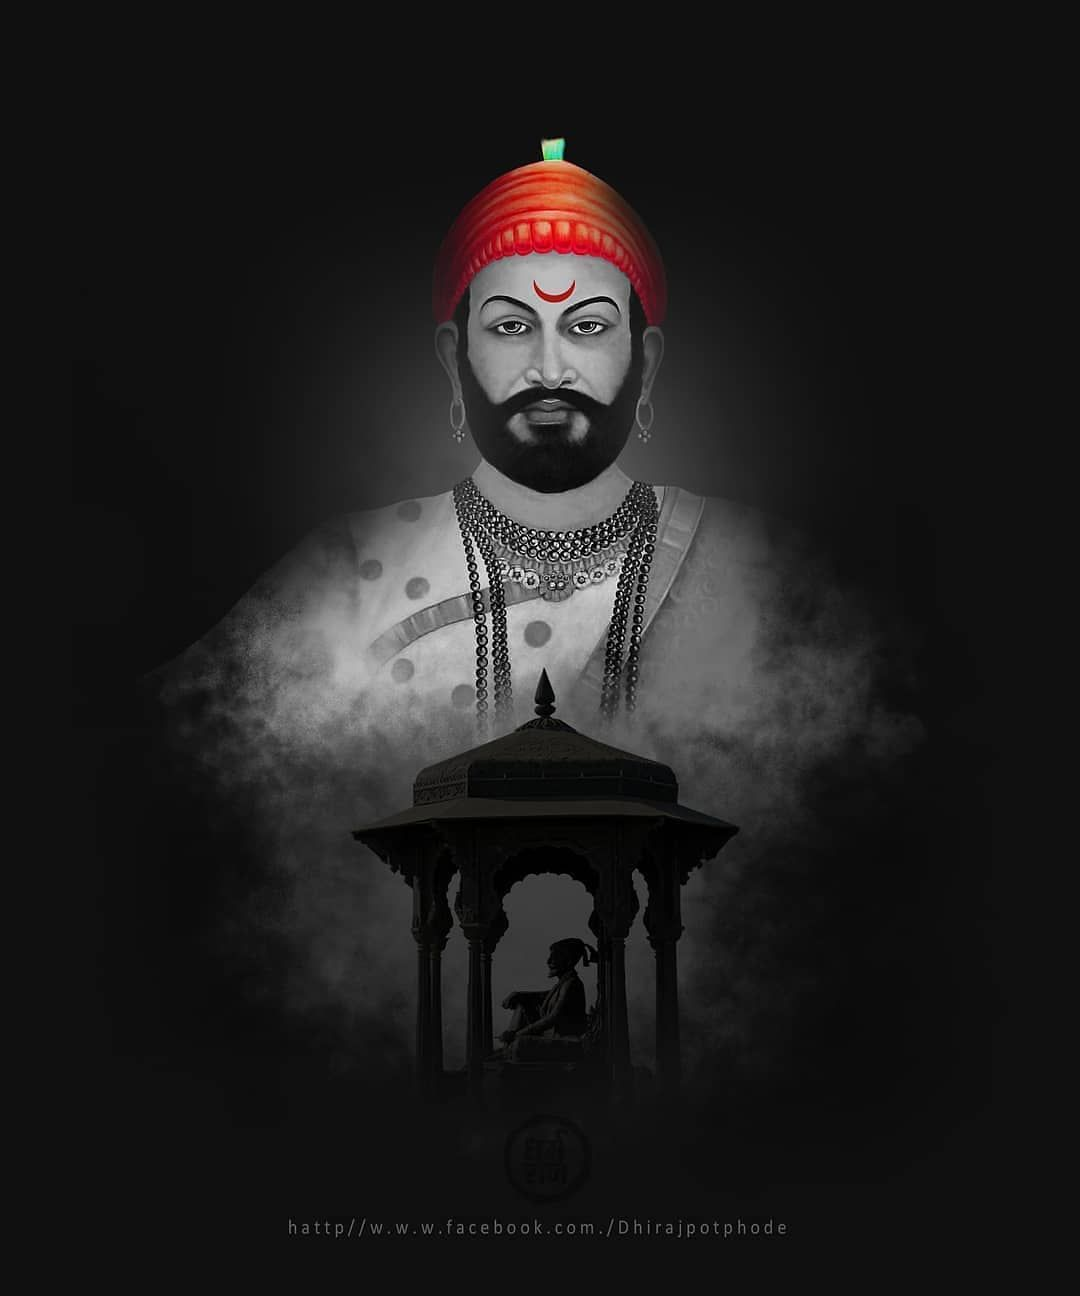 Image May Contain 1 Person Text Shivaji Maharaj Hd Wallpaper Warriors Wallpaper Hanuman Wallpaper